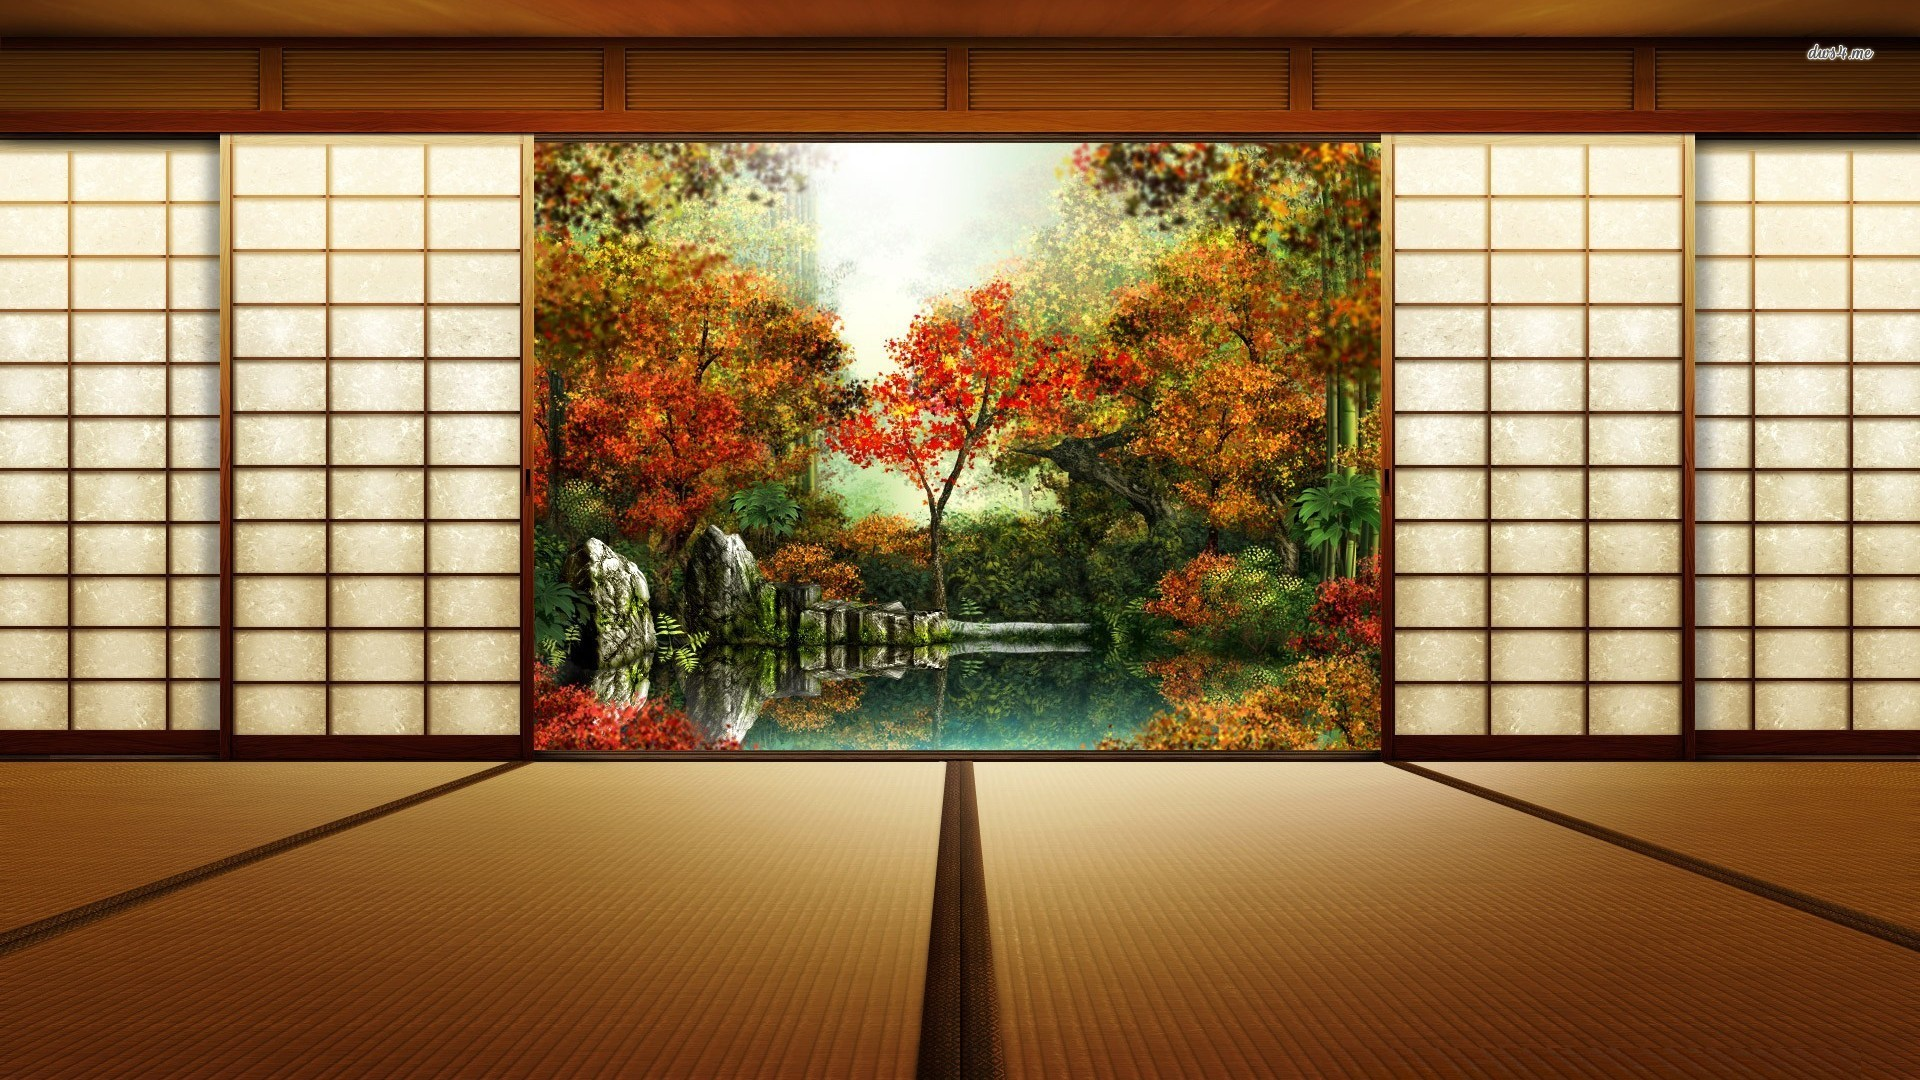 Res: 1920x1080, Gardens Wallpaper: Japanese Room Wallpaper Digital Art Wallpapers .